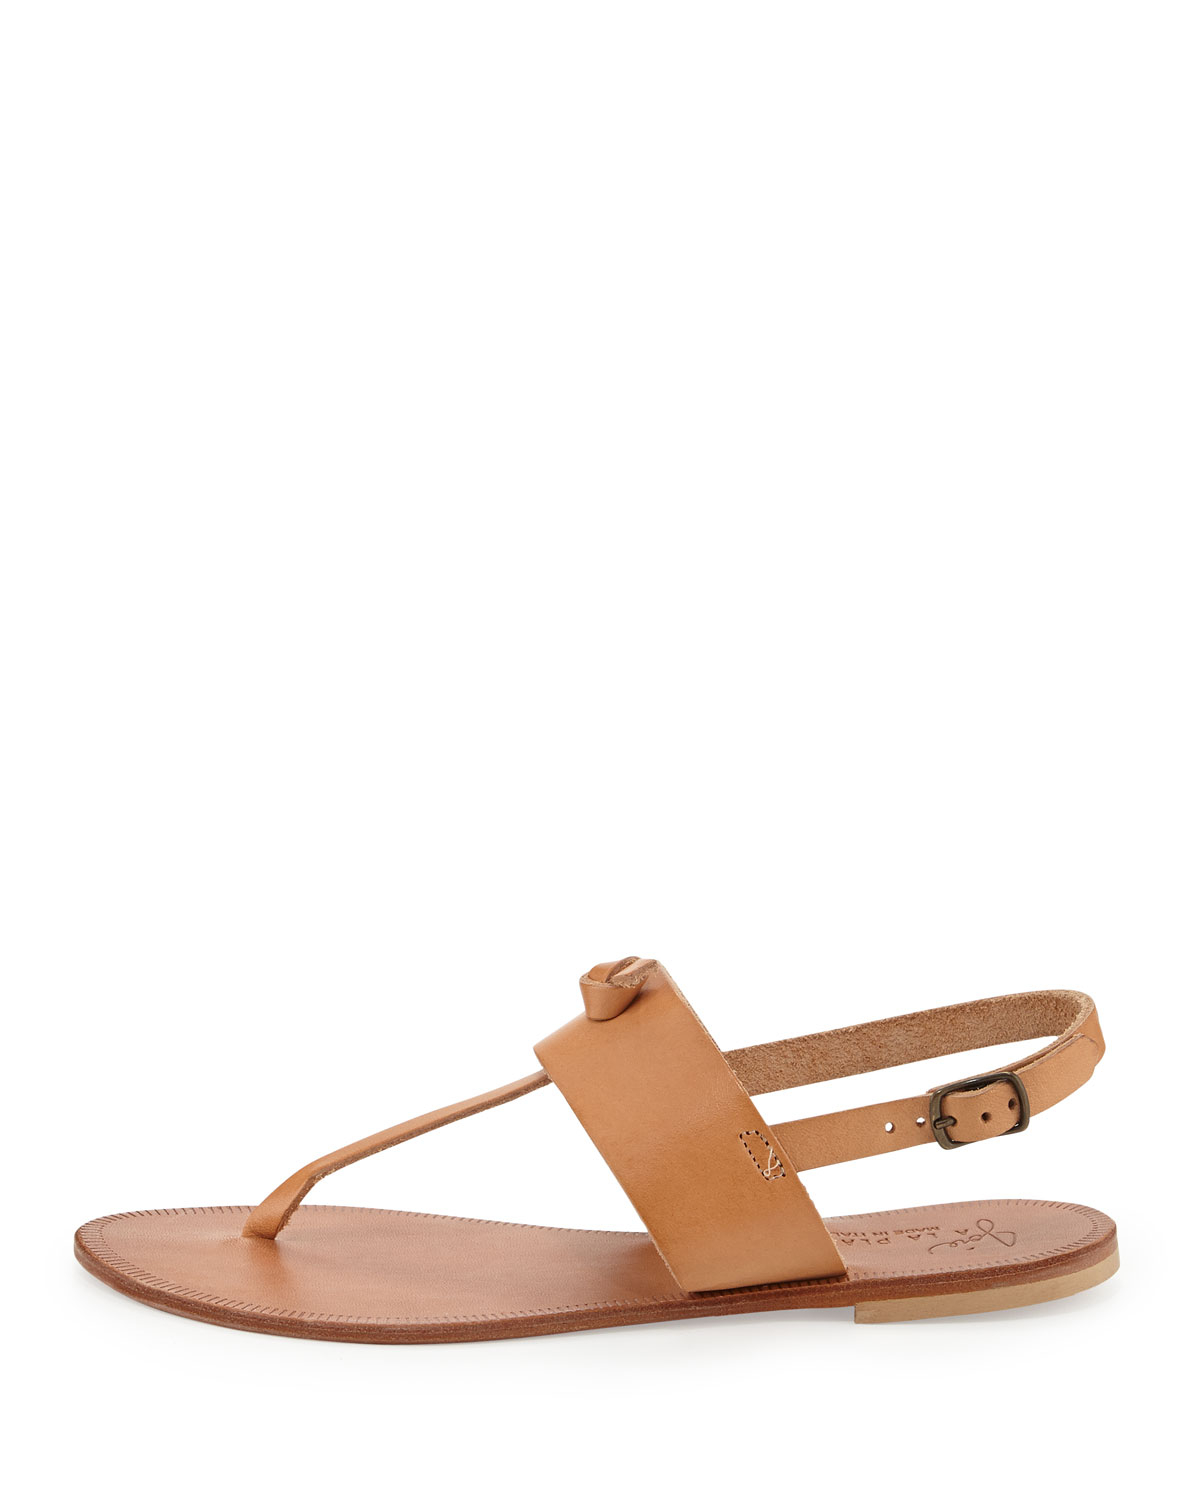 ff6beafaf78aa7 Lyst - Joie Bastia Knot Thong Sandal in Brown